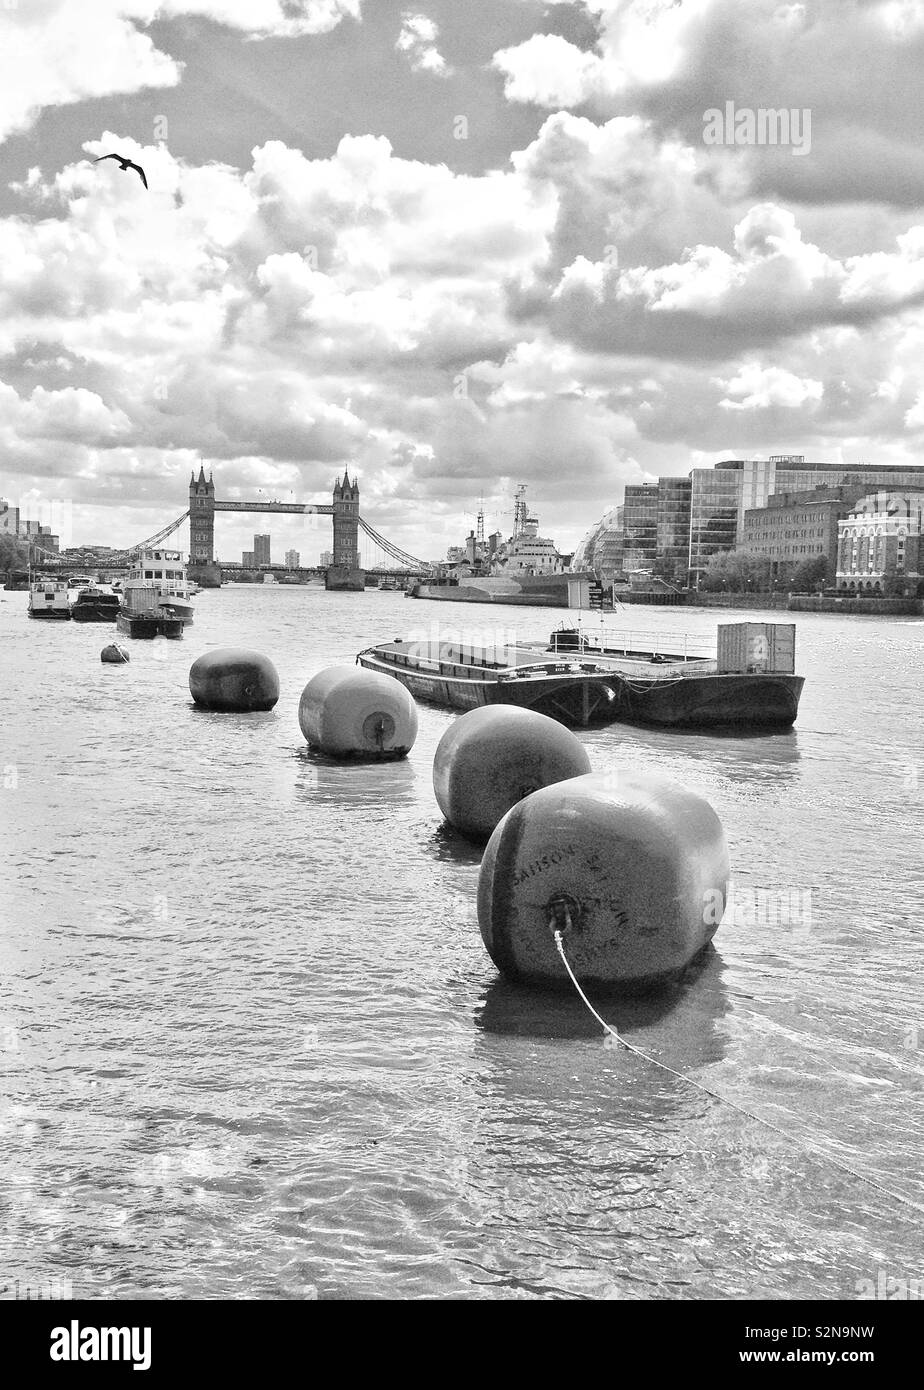 A view along the River Thames in London, England, looking towards Tower Bridge and City Hall. - Stock Image